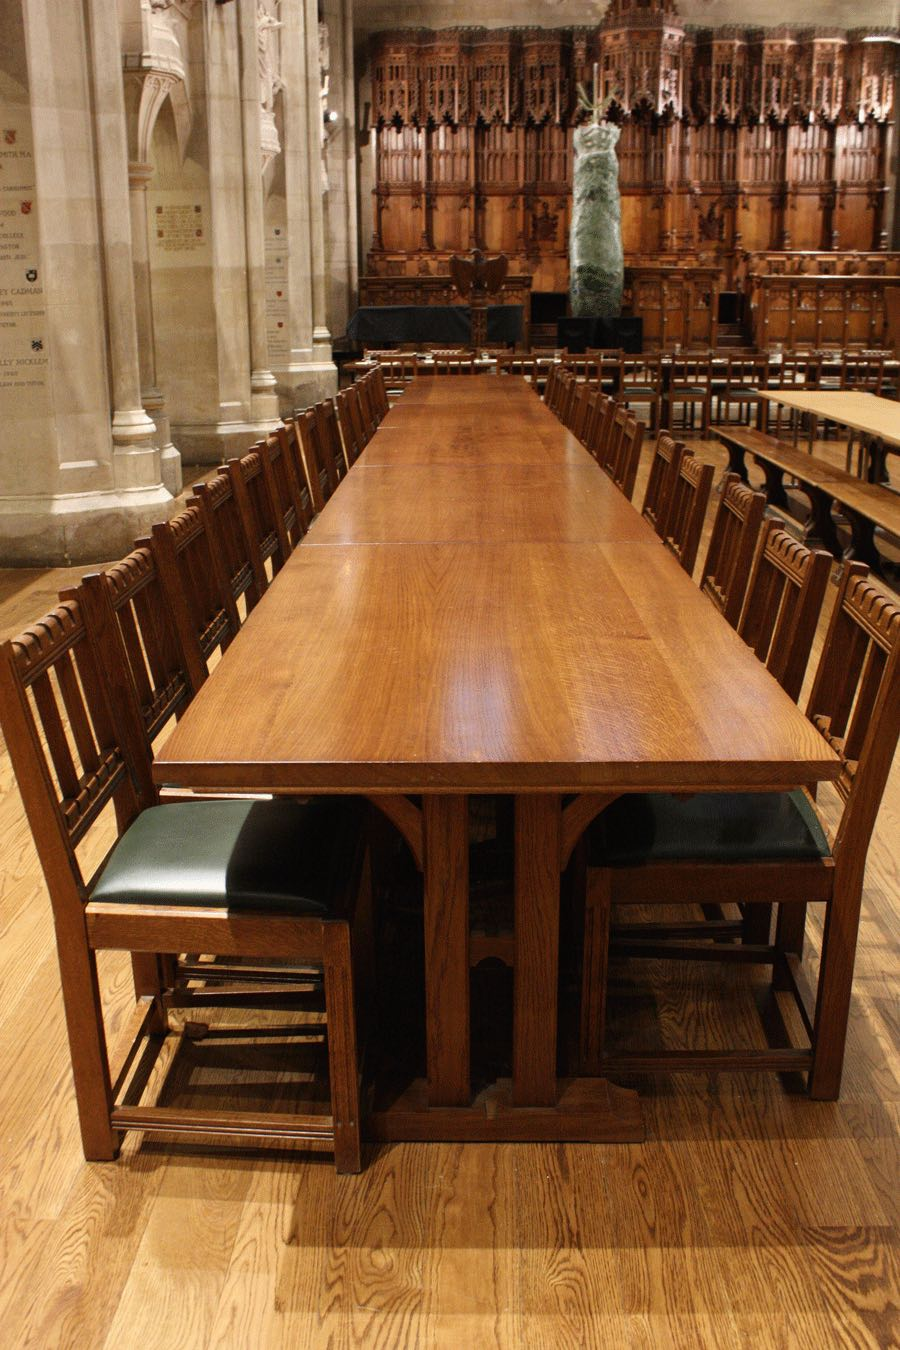 Mansfield College dining room